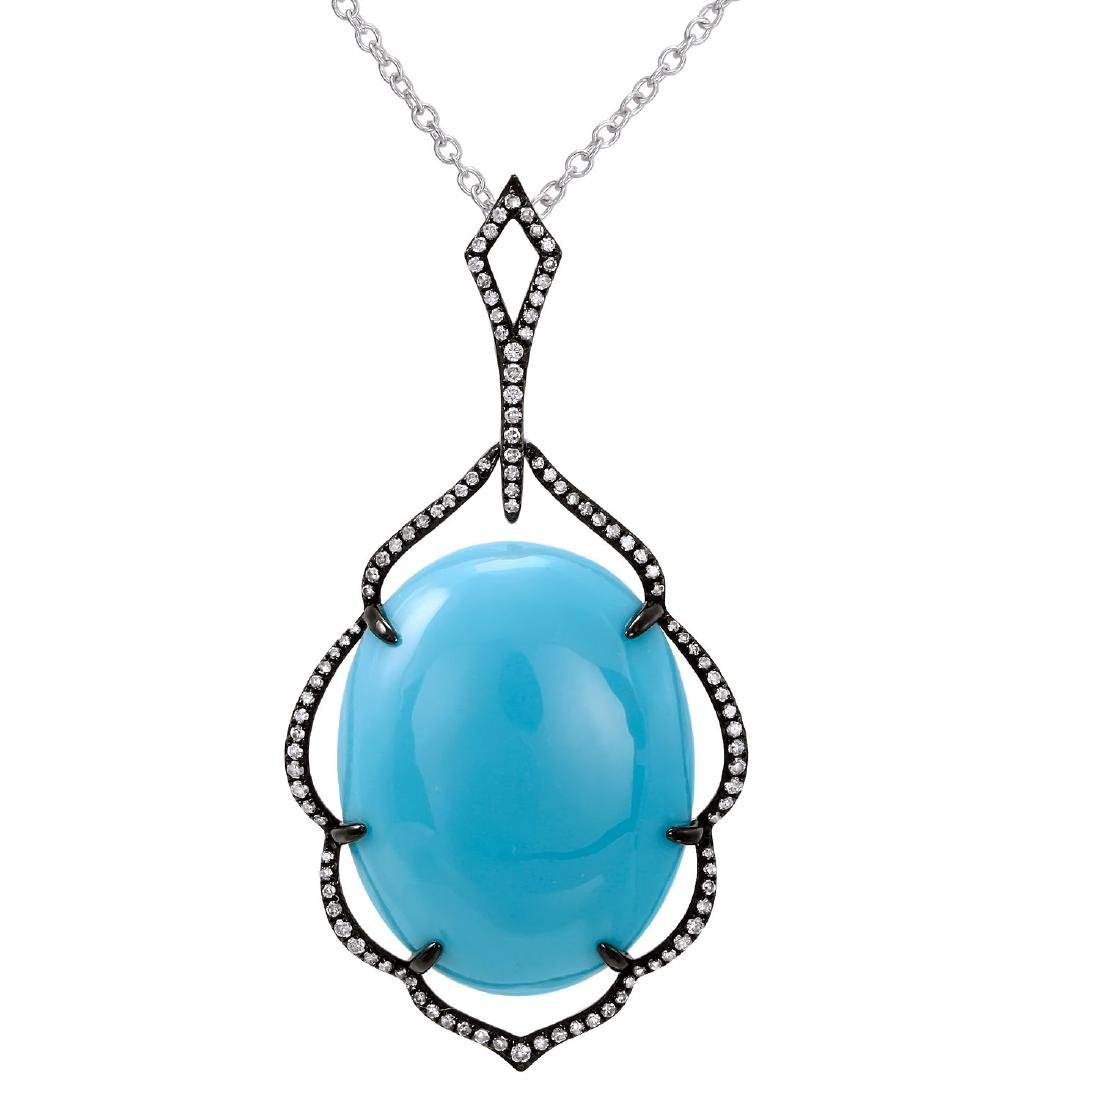 14KT  Gold Gemstone Pendant With Chain